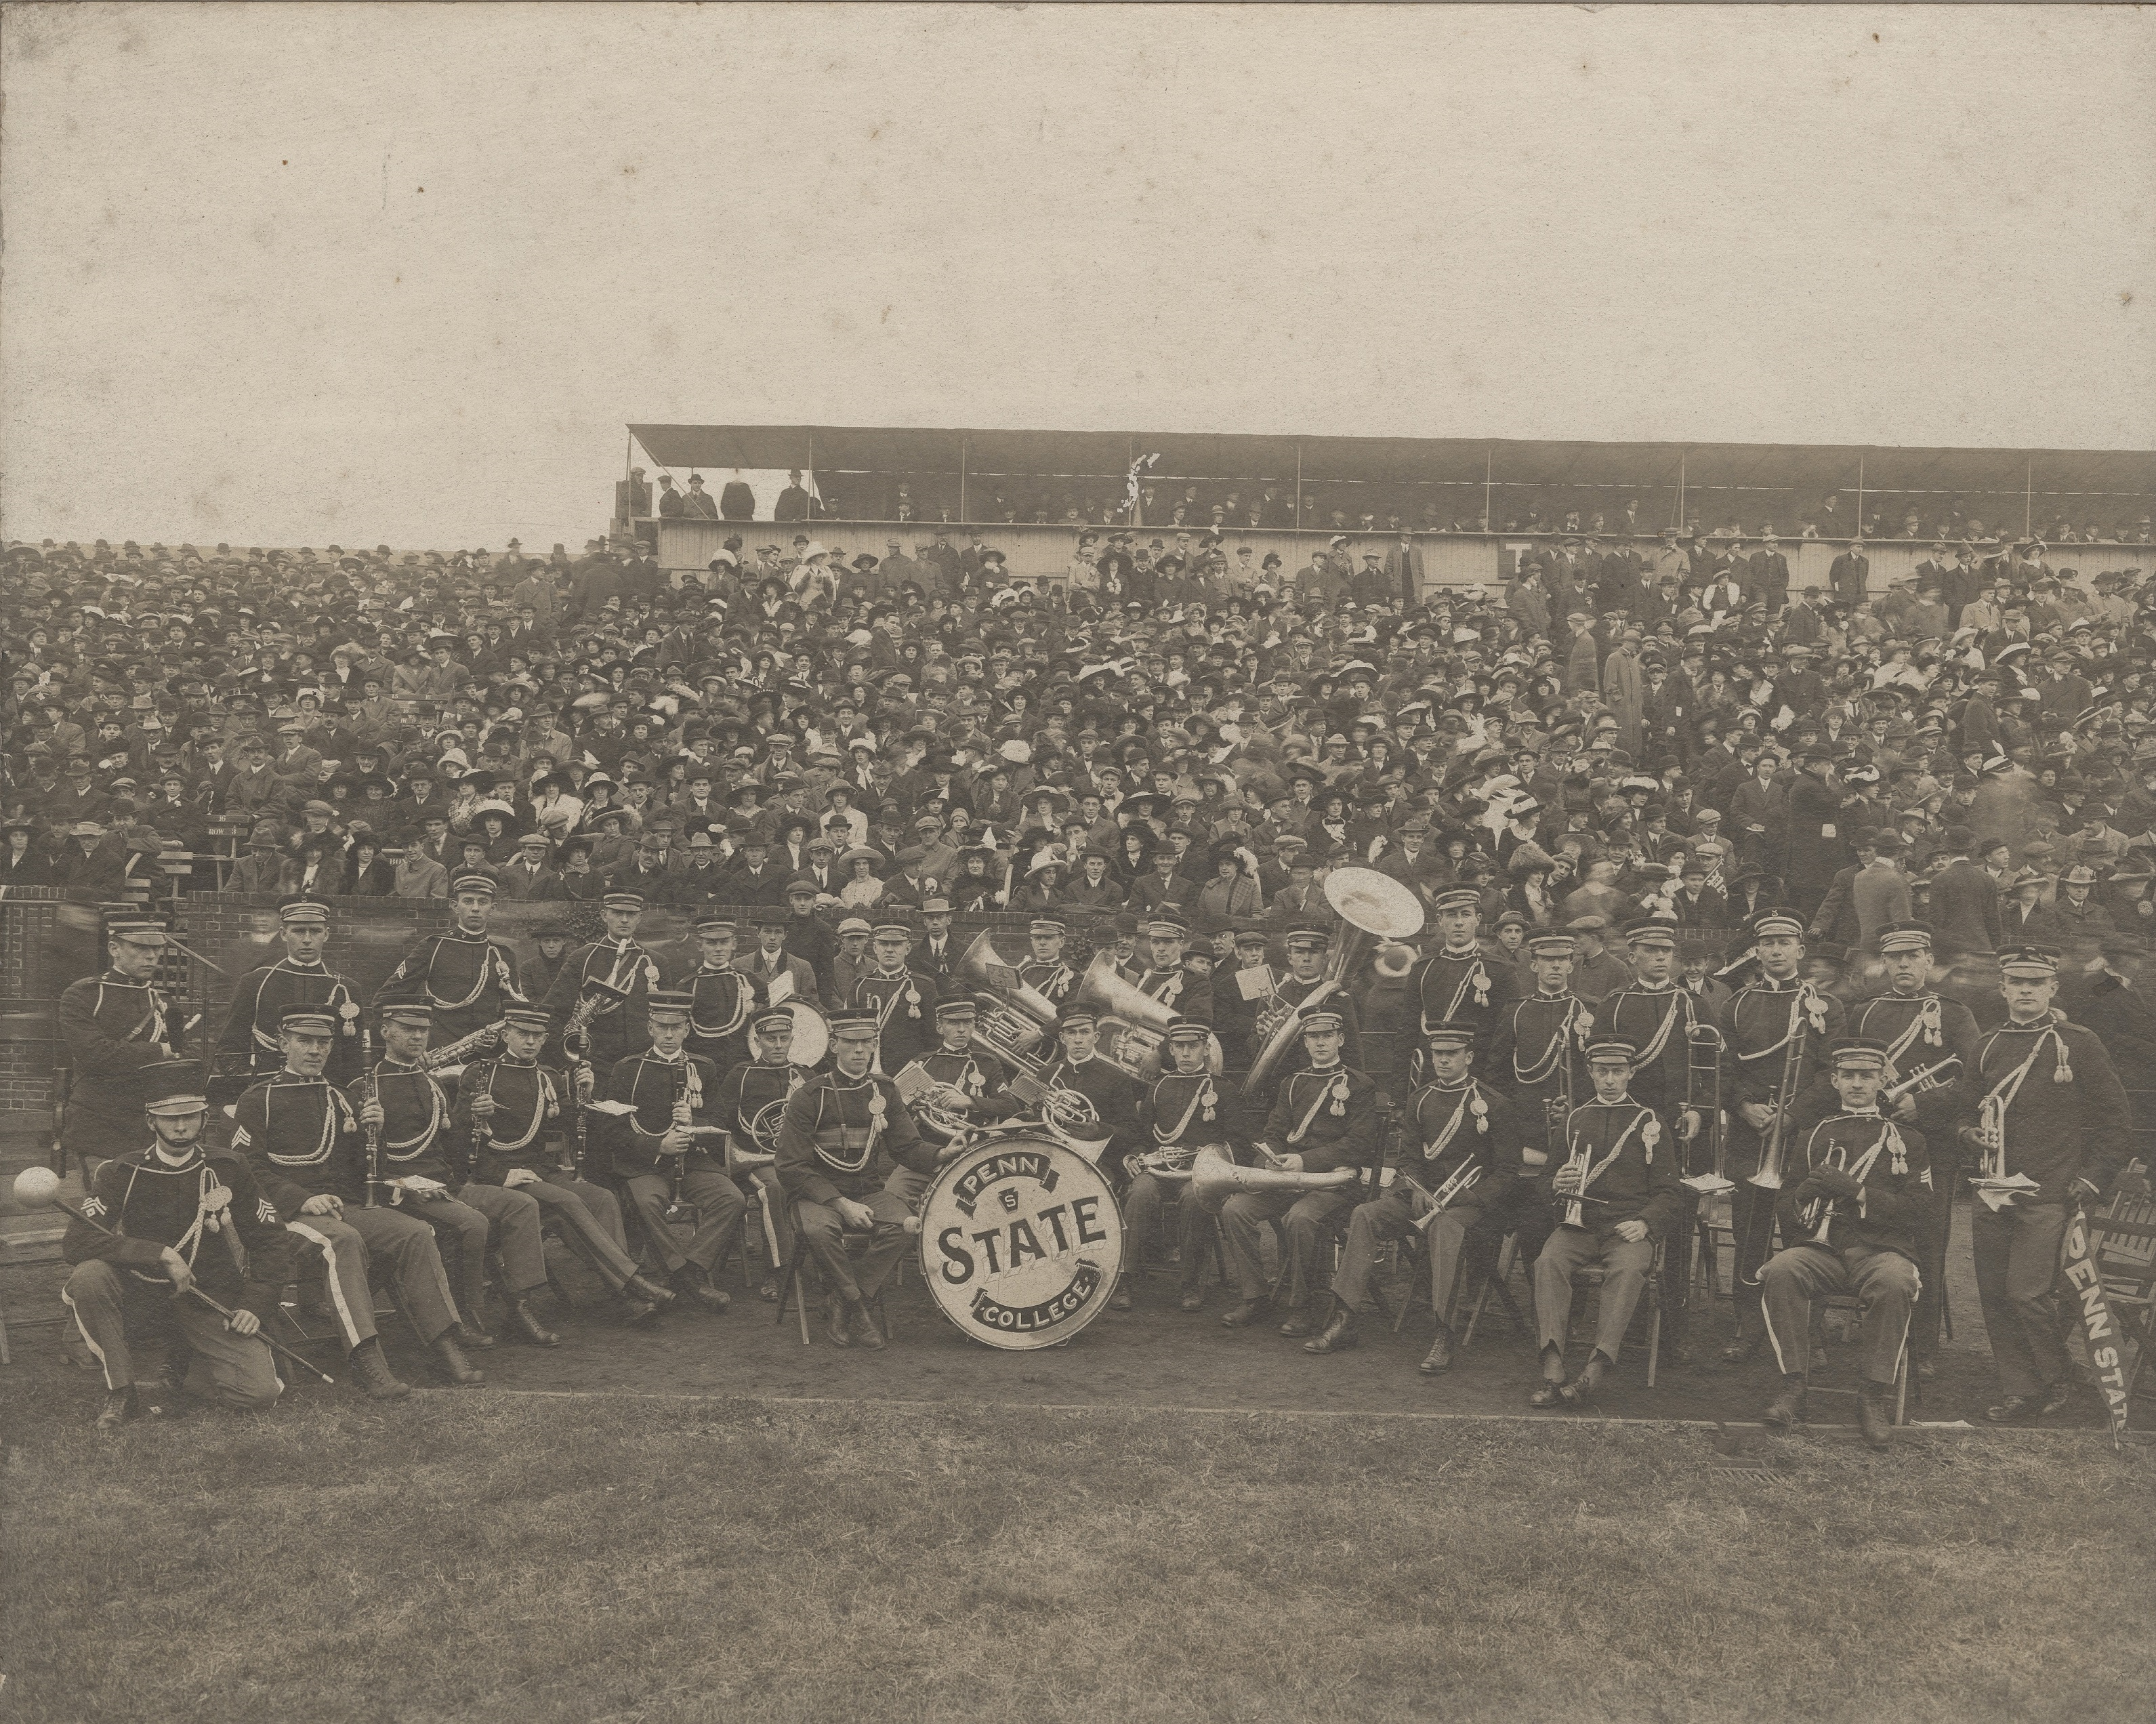 small marching band in uniform sitting in front of a stadium crowd